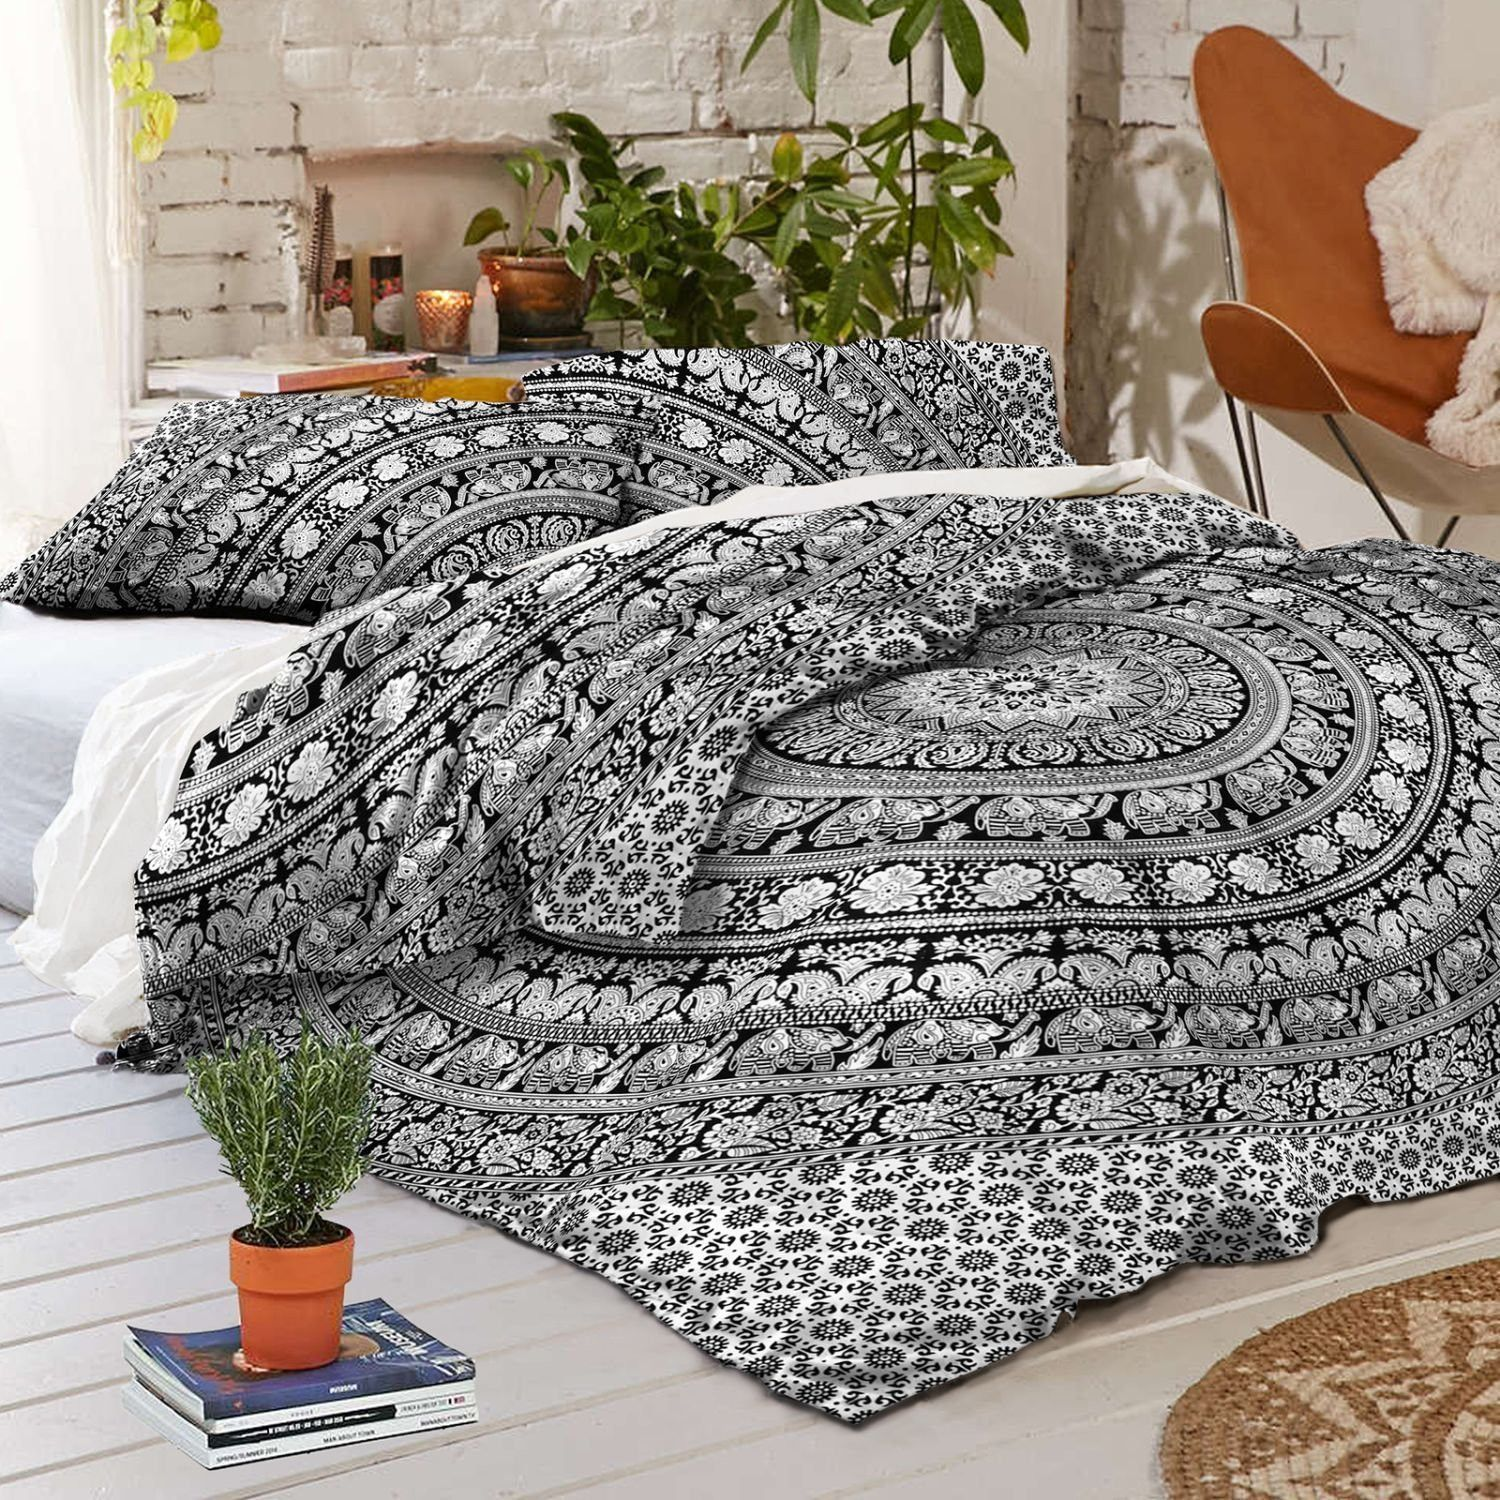 New Boho Hippie Mandala Black Tapestry Full Duvet Cover